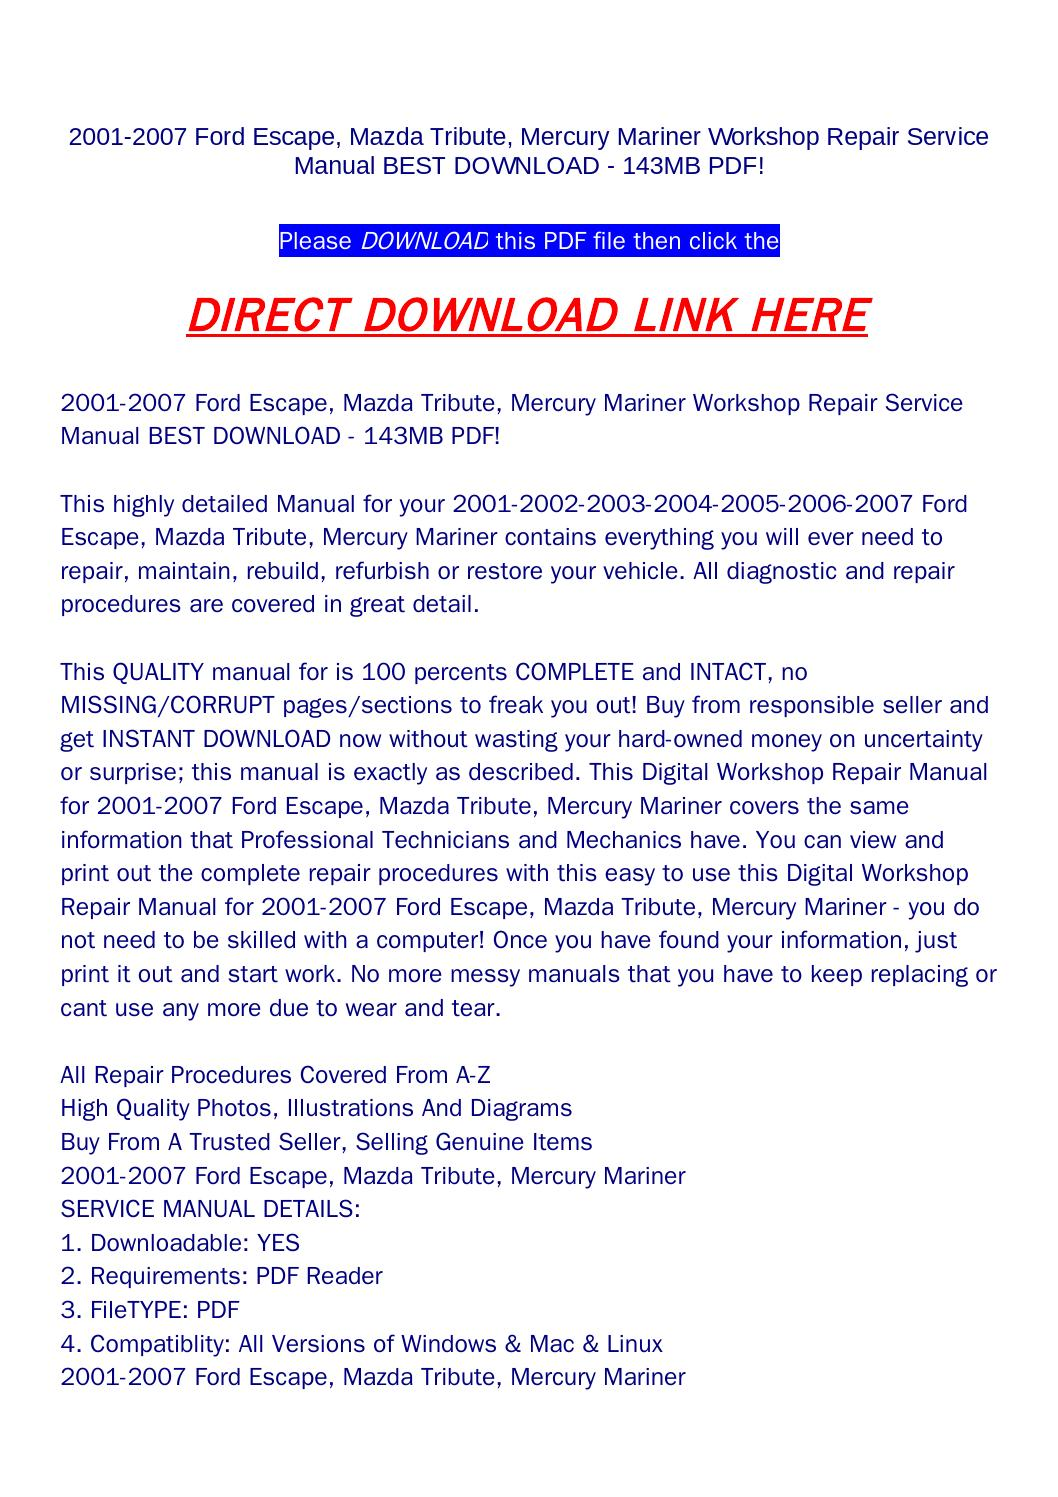 2001 2007 ford escape, mazda tribute, mercury mariner workshop repair  service manual best download 1 by rock-pagelarge.com - issuu